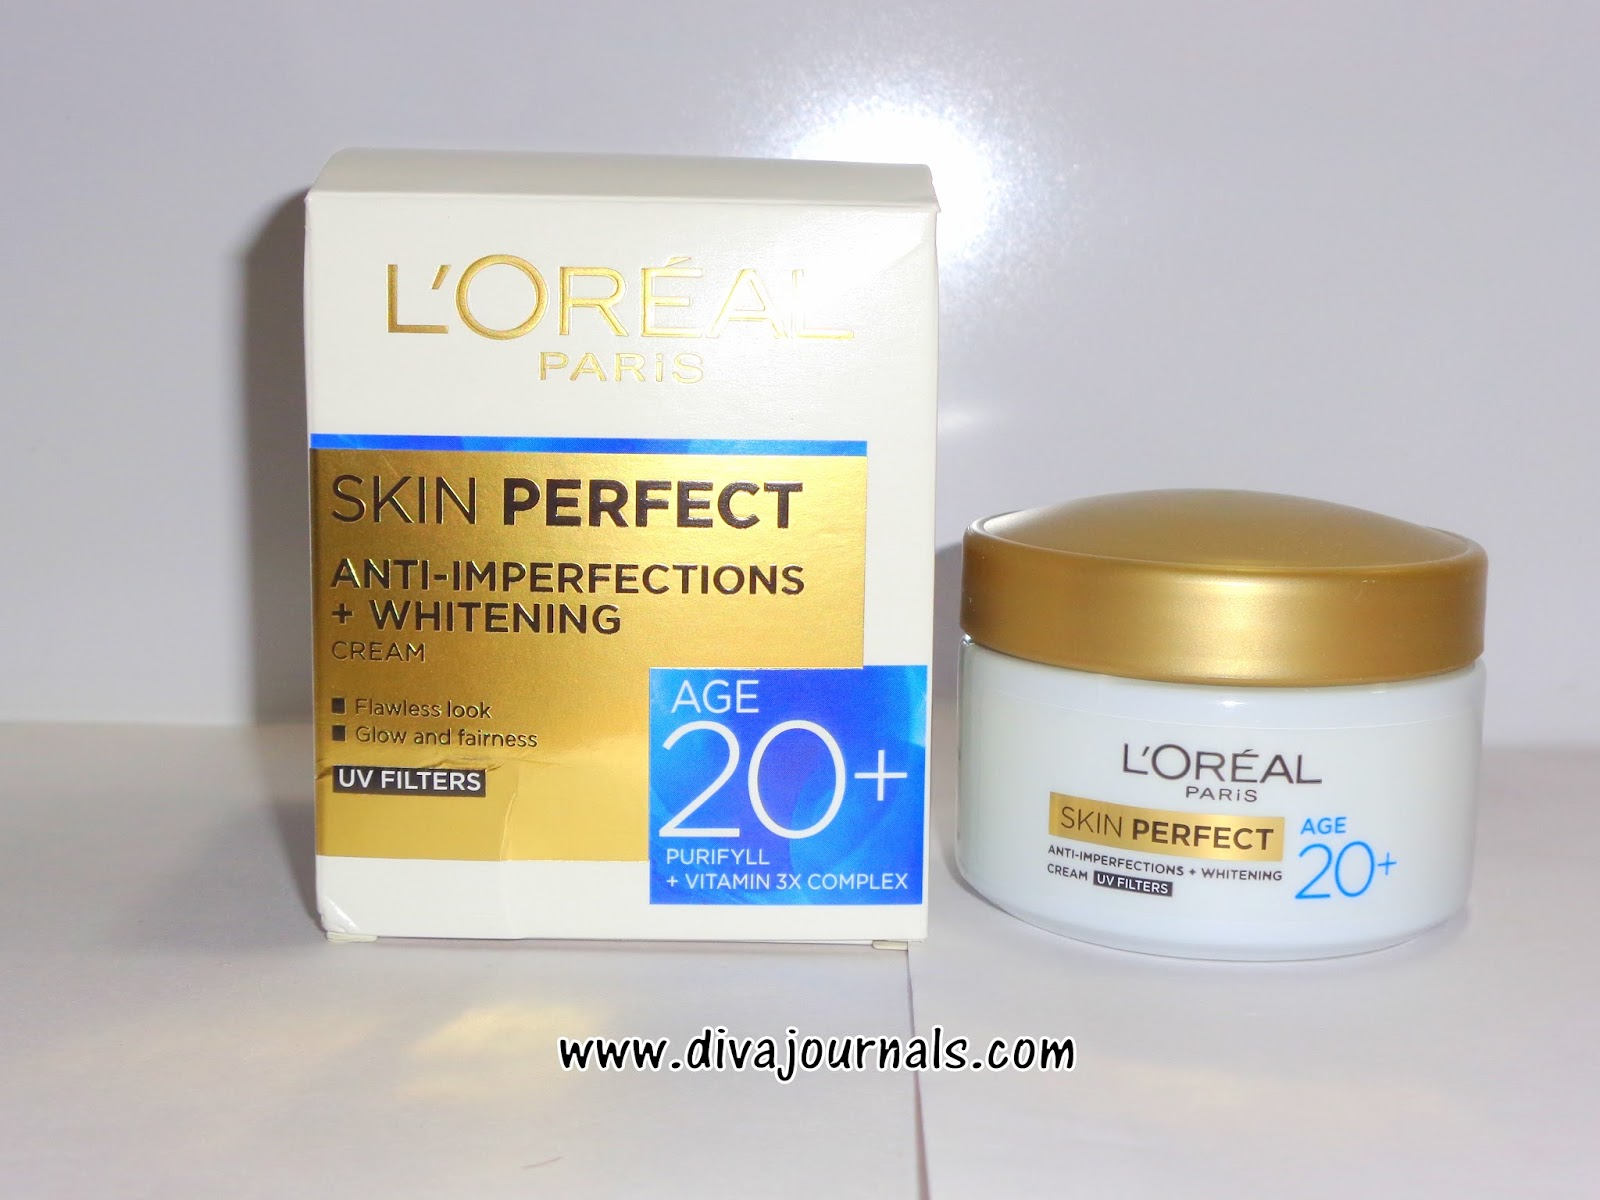 L'oreal Paris Skin Perfect Age 20+ Cream Review